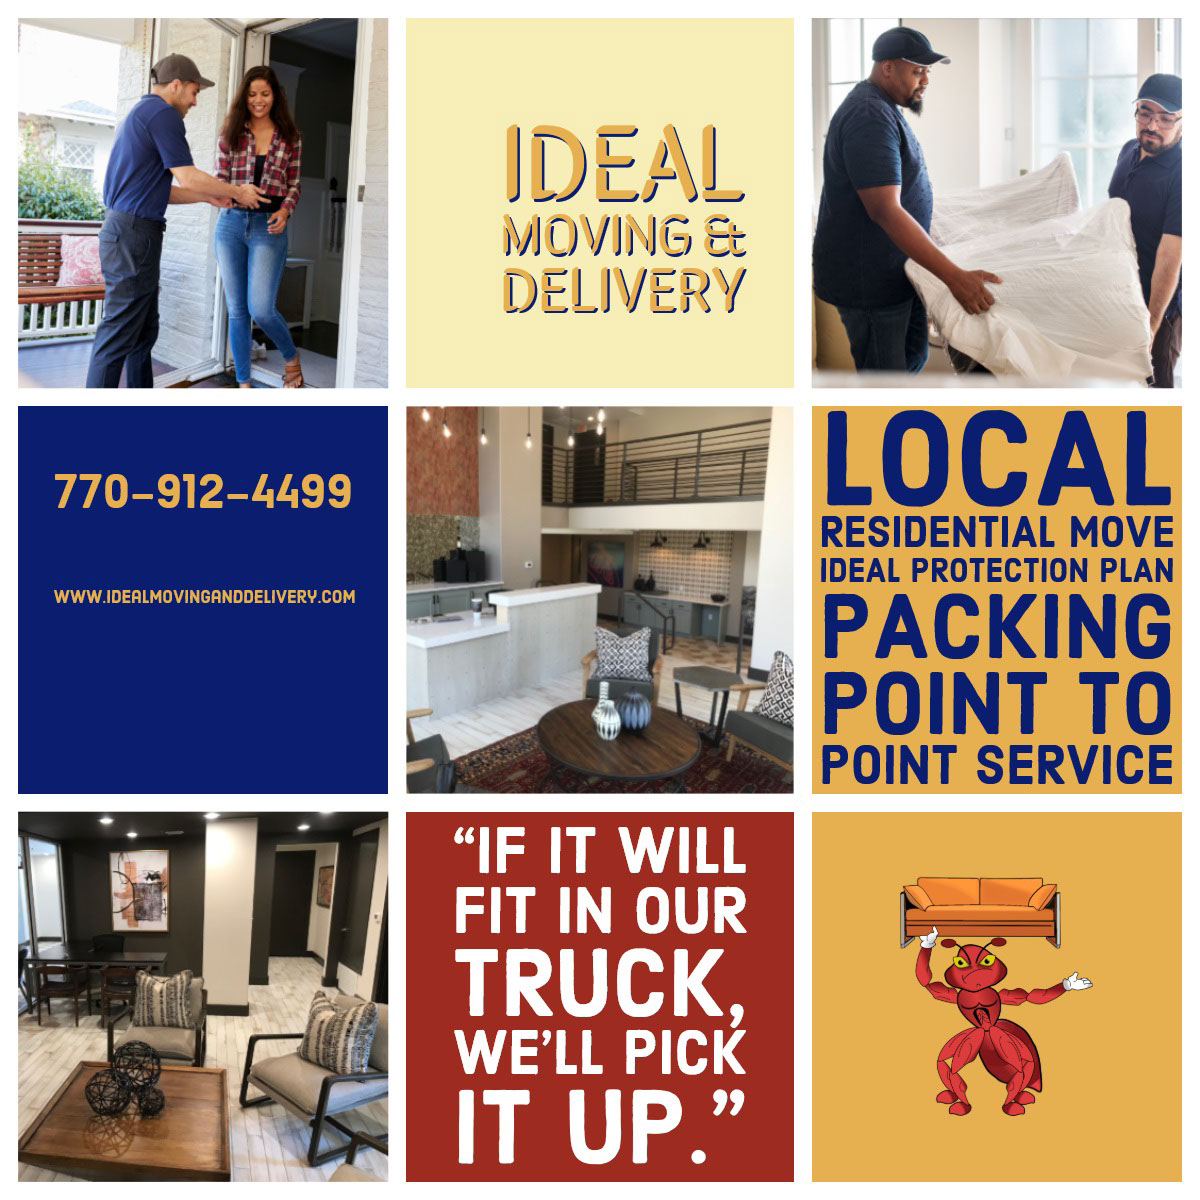 "Ideal Moving & Delivery Ideal Moving & Delivery<P>""If it will fit in our truck, we'll pick it up.""<P>Local residential move<BR>Ideal Protection plan<BR>Packing Point to point service <P>770-912-4499<P>www.idealmovinganddelivery.com<BR>"